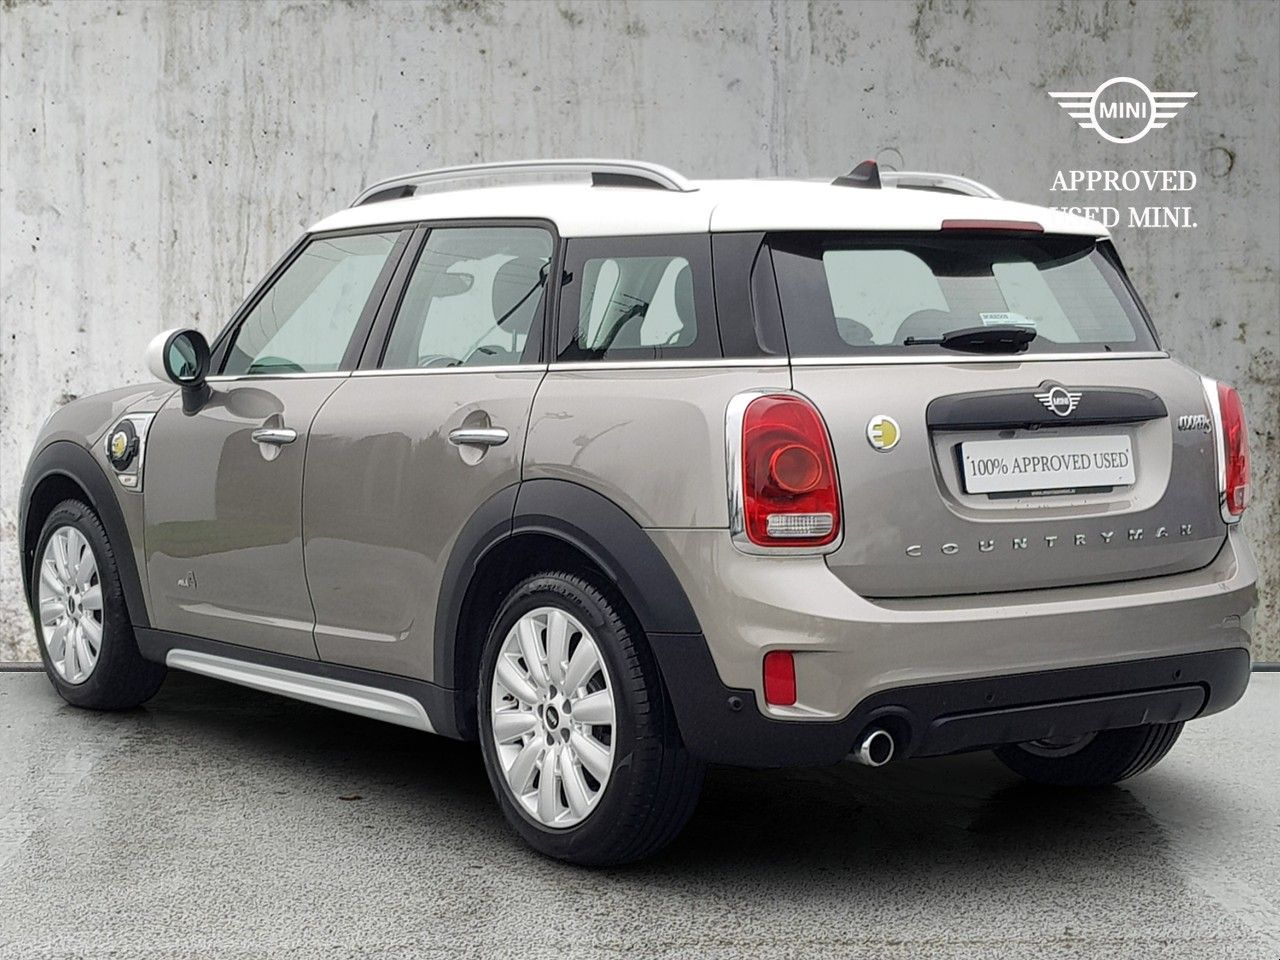 Used MINI Countryman F60 MINI Cooper S E ALL4 PHEV Countryman (2019 (192))